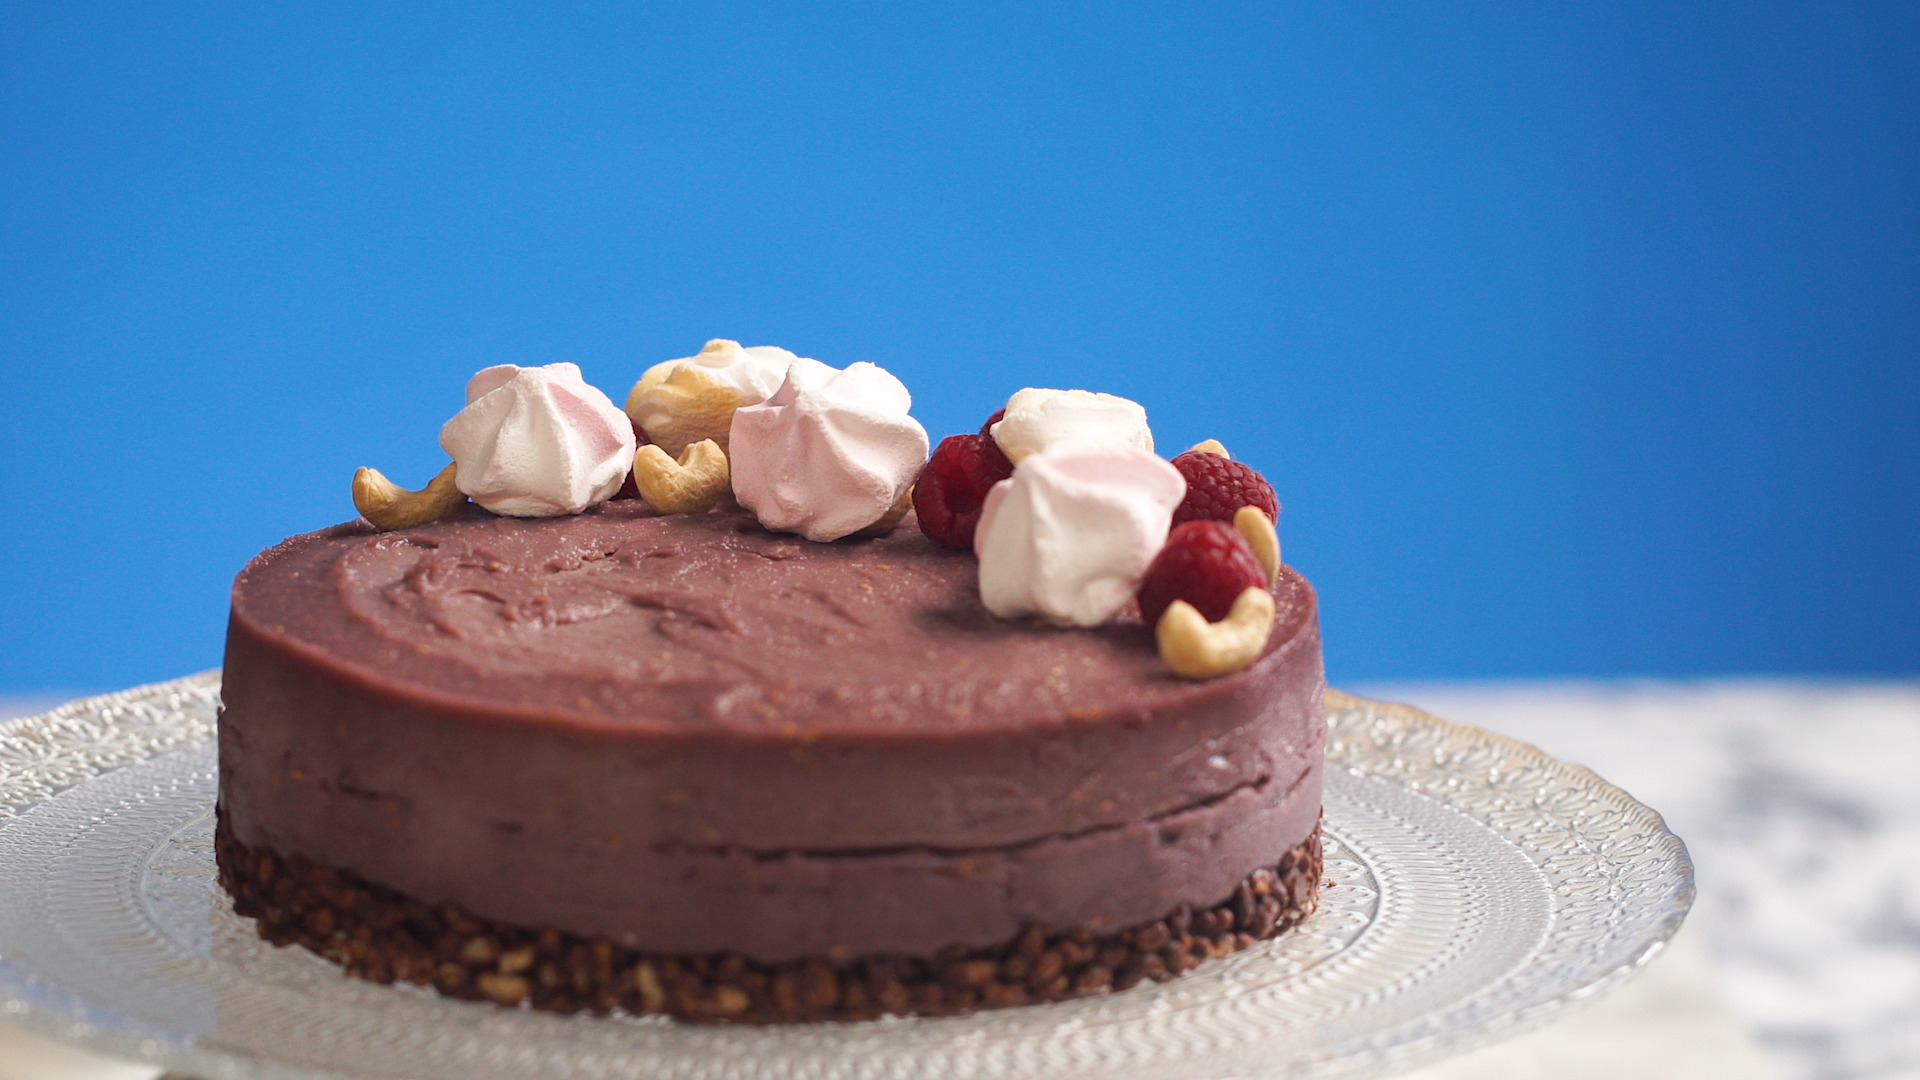 Chocolate Mousse CakeChocolate Mousse Cake